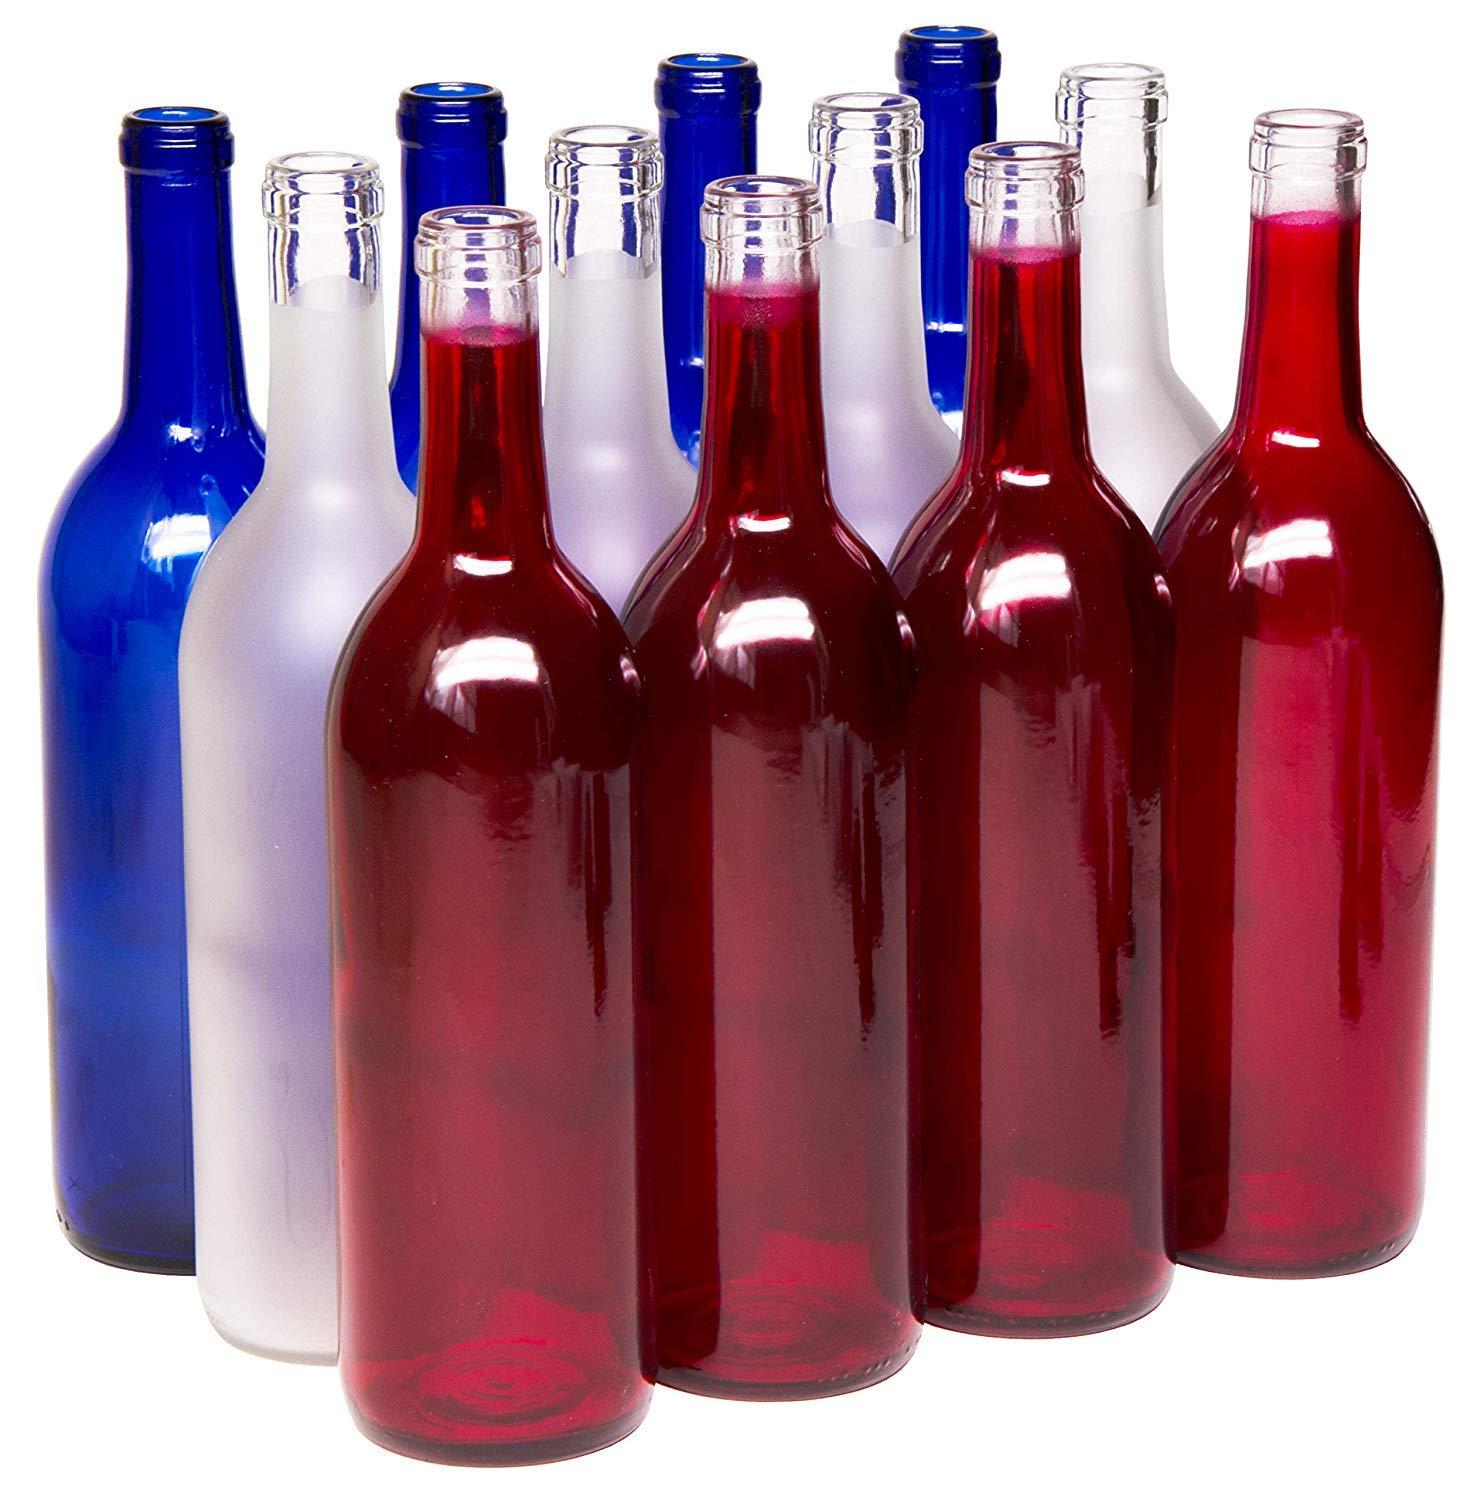 North Mountain Supply 750ml Red White & Blue Assortment Glass Bordeaux Wine Bottle Flat-Bottomed Cork Finish - Case of 12